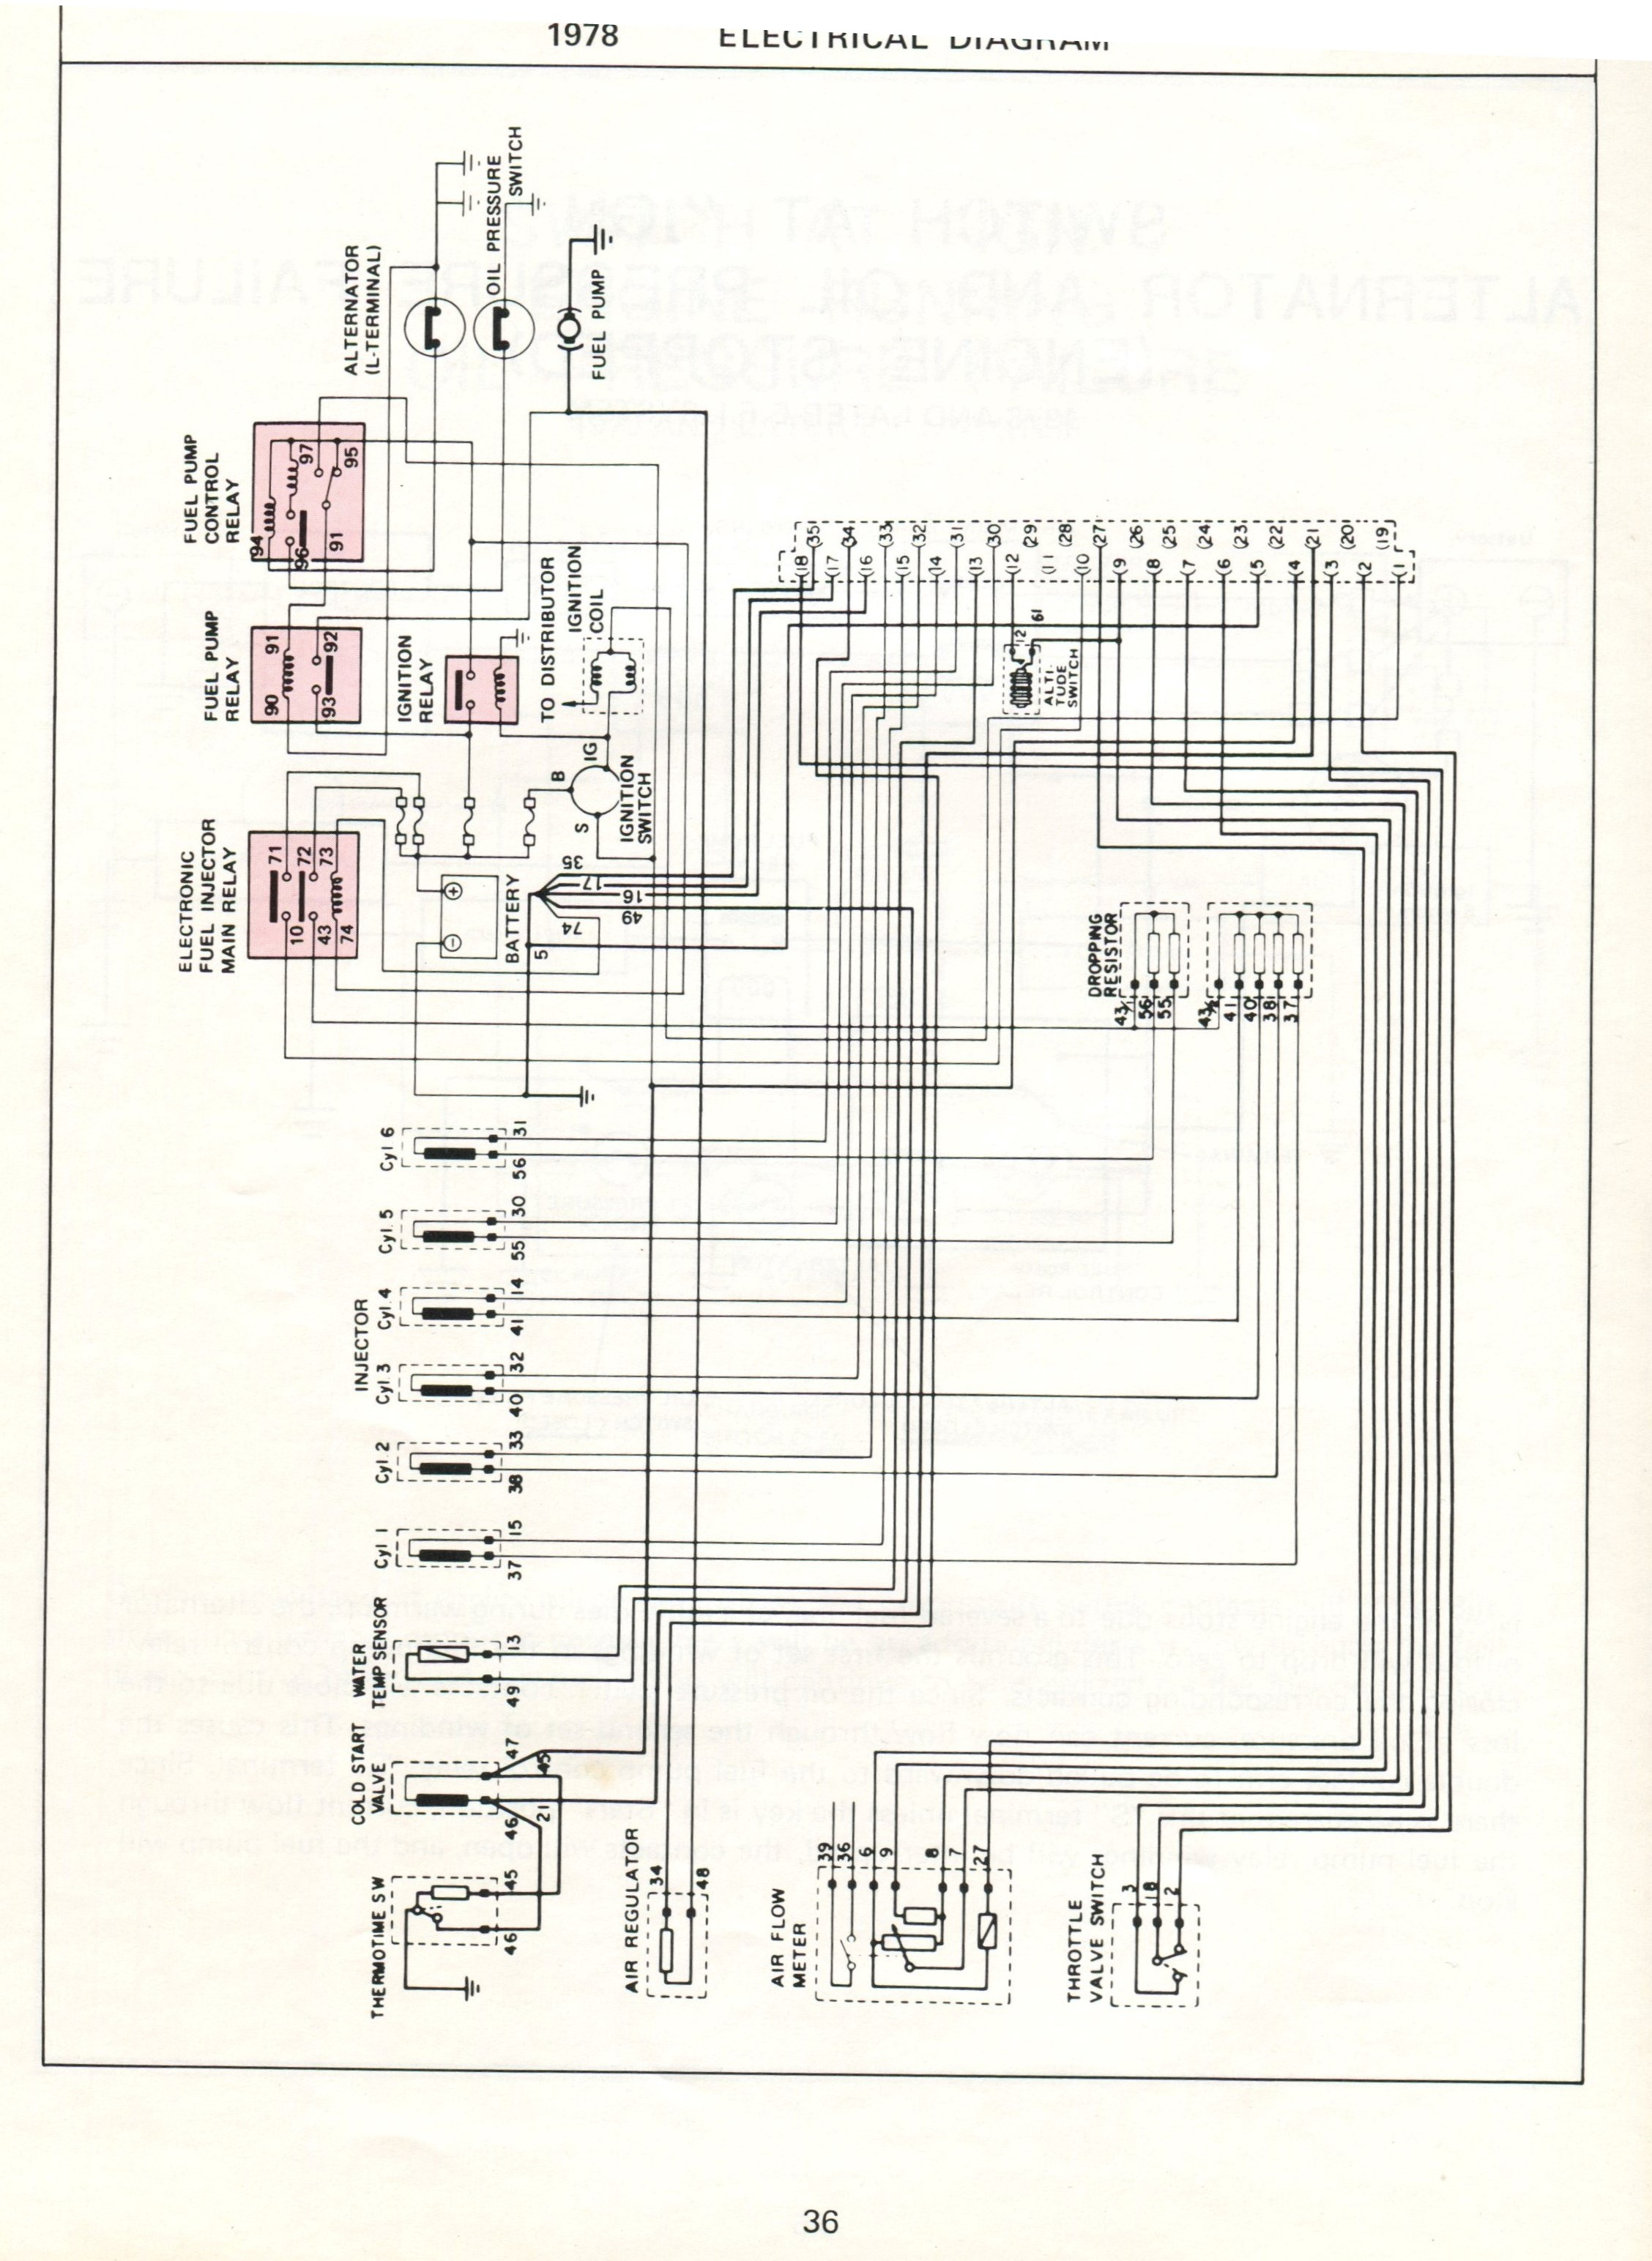 1984 Cj8 Wiring Diagram. Diagrams. Auto Fuse Box Diagram